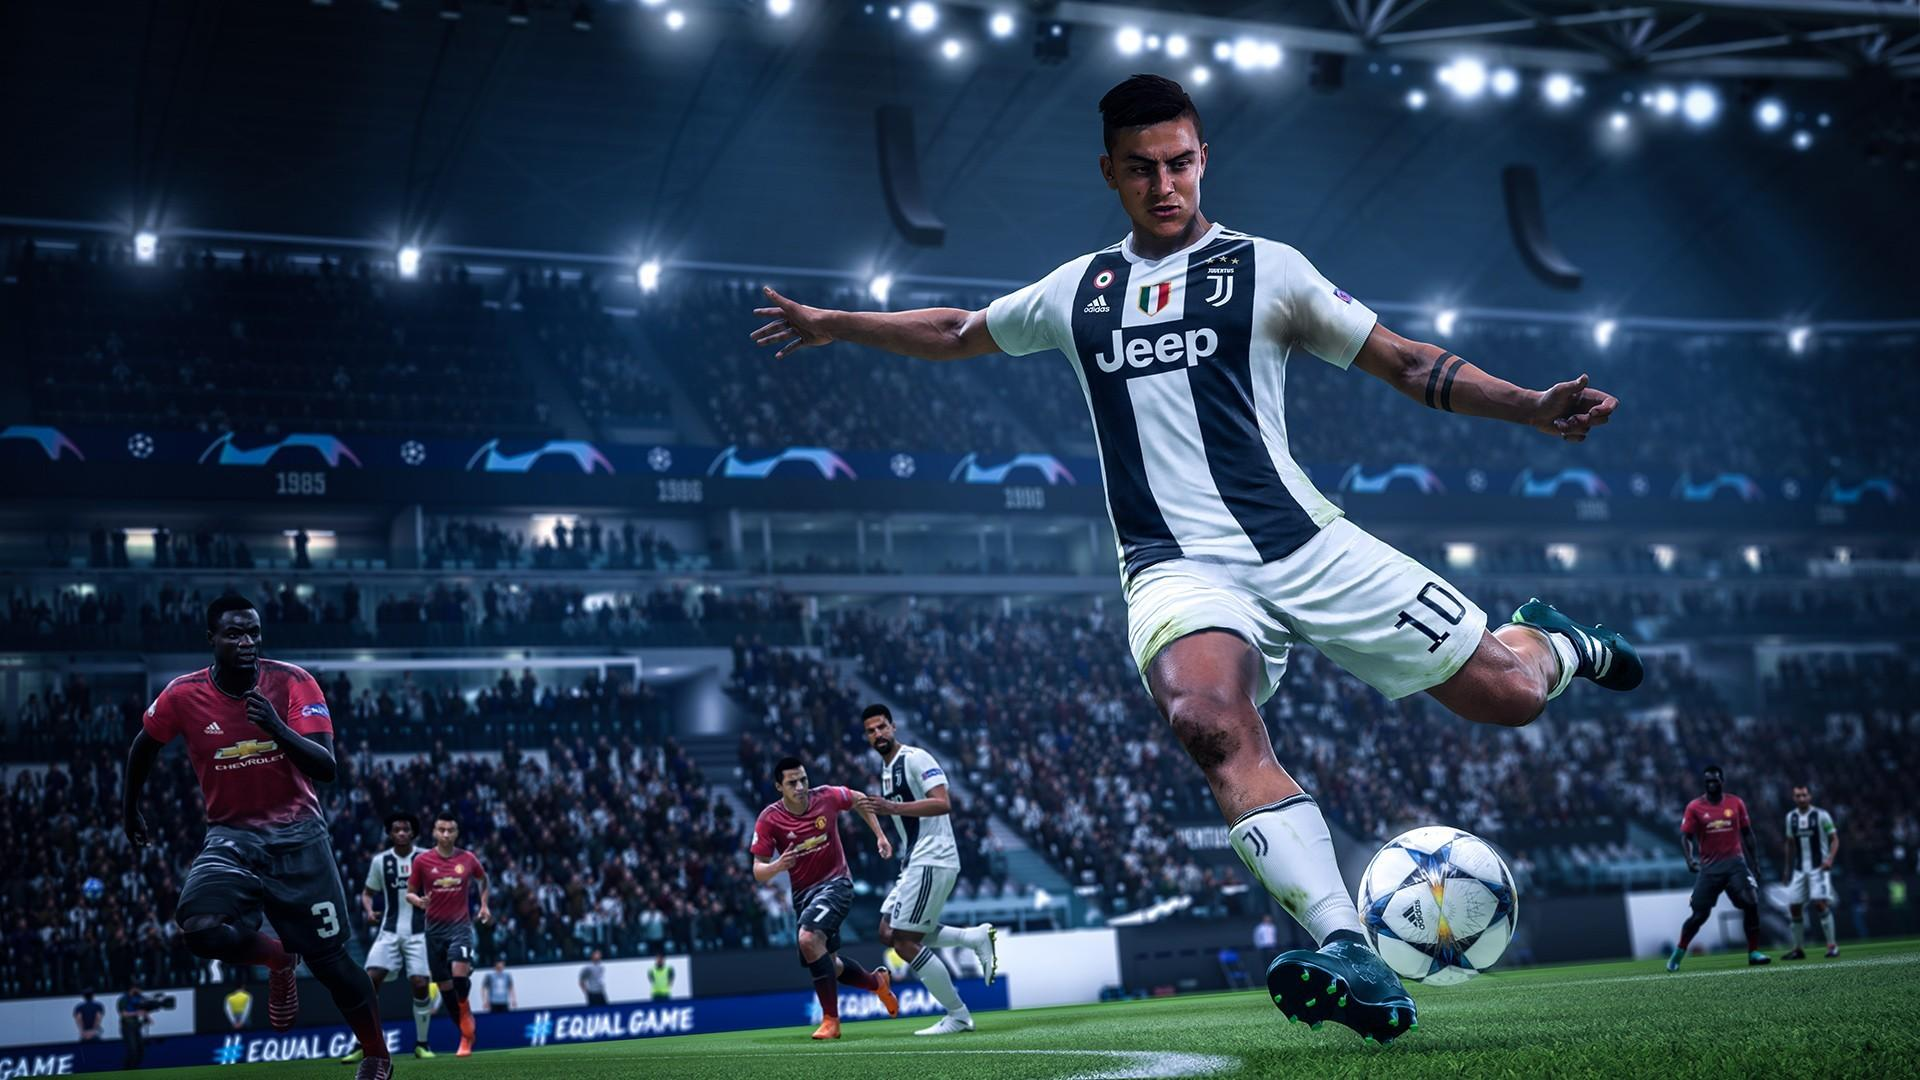 The patch has nerfed bicycle kicks – which many thought were overpowered